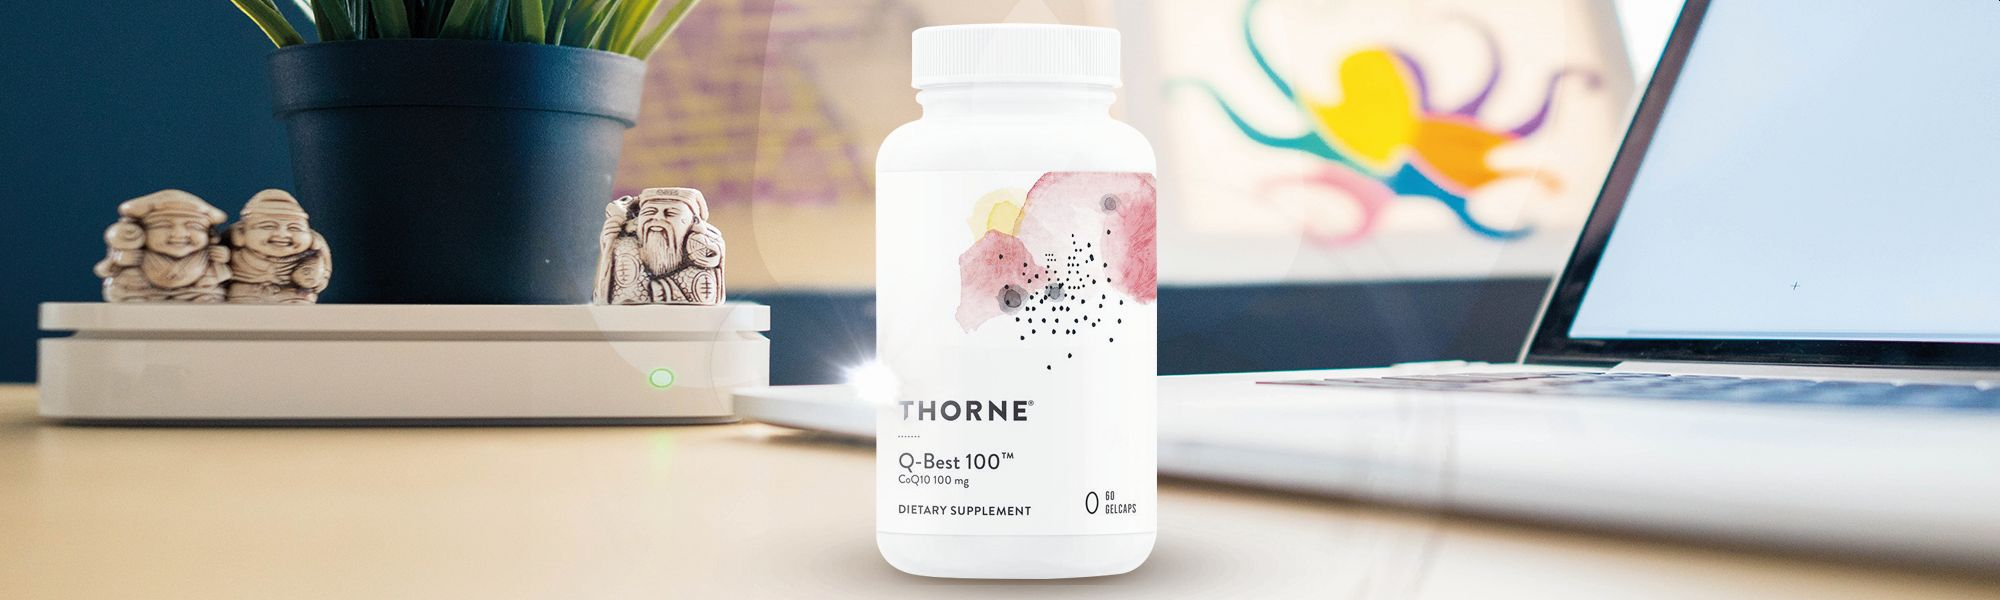 Thorne Research Q-Best 100 Review